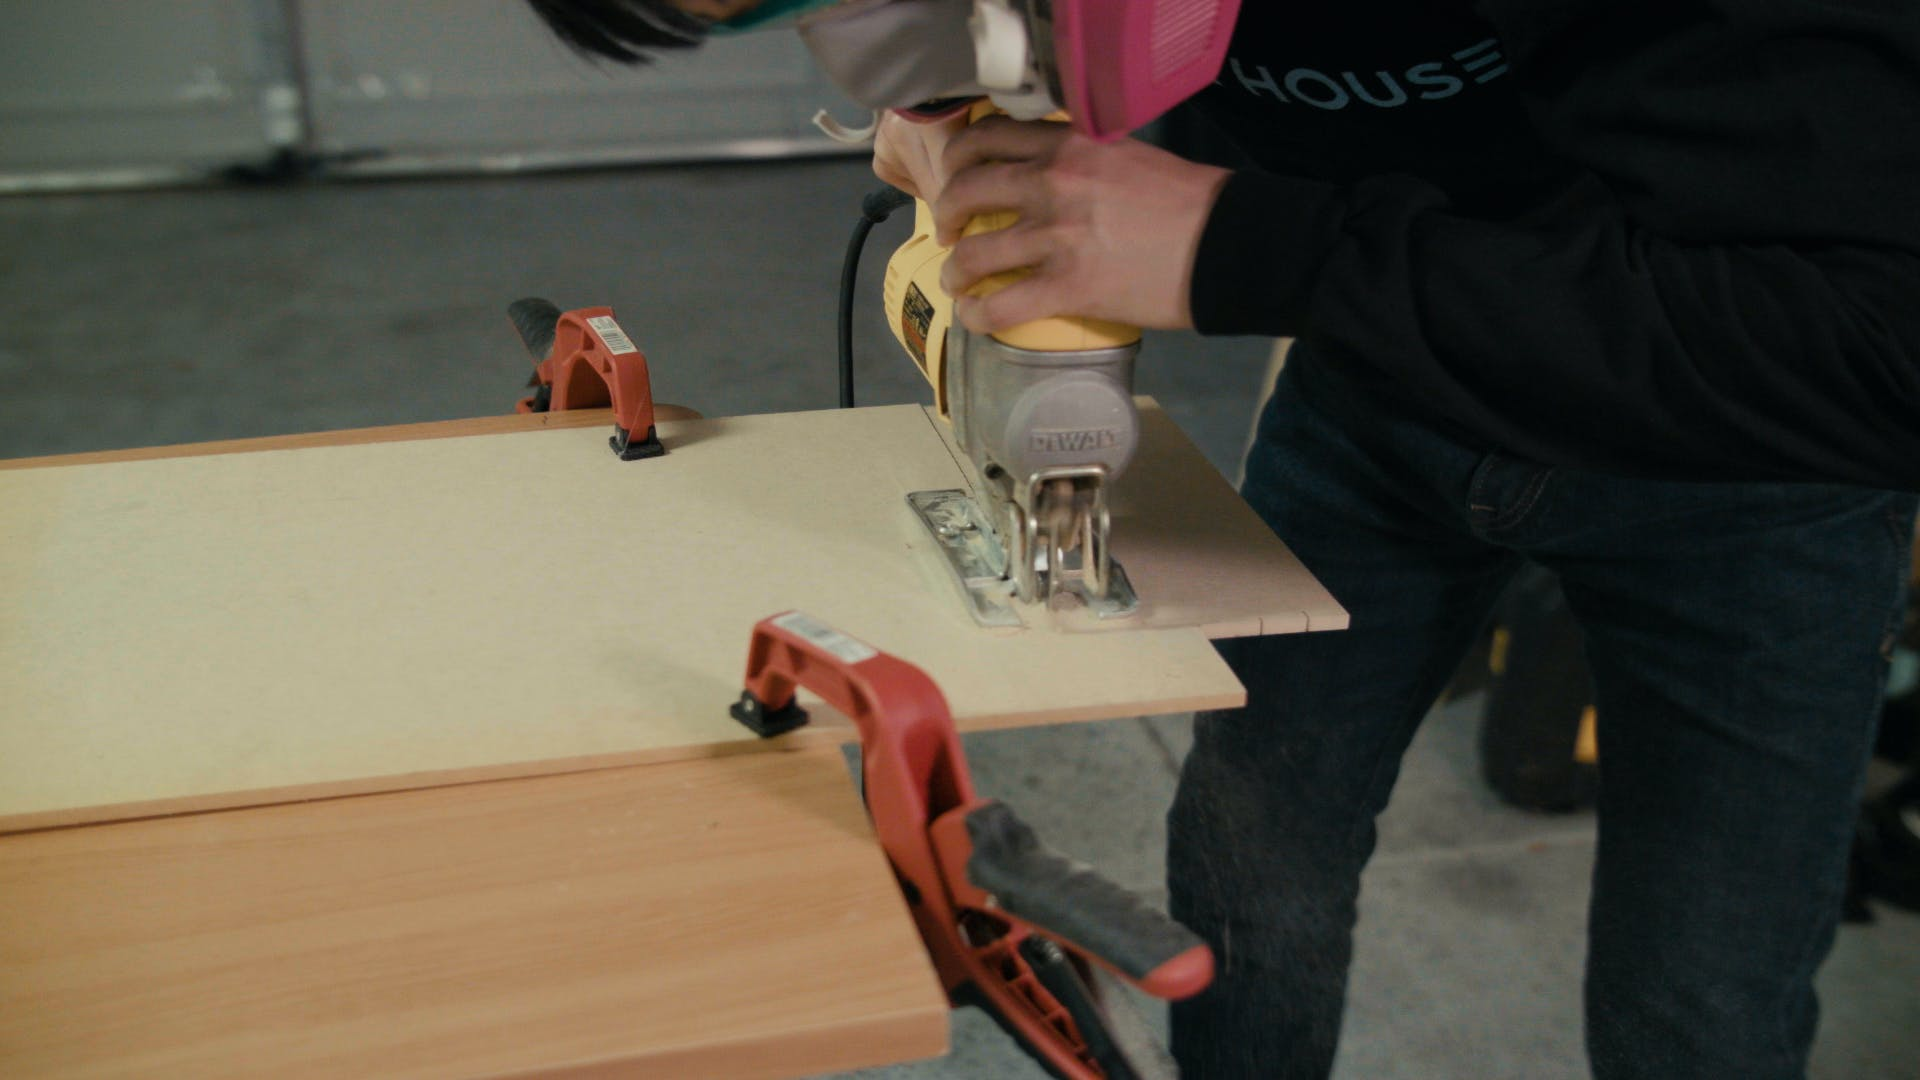 Making a wooden box to hold the cooler